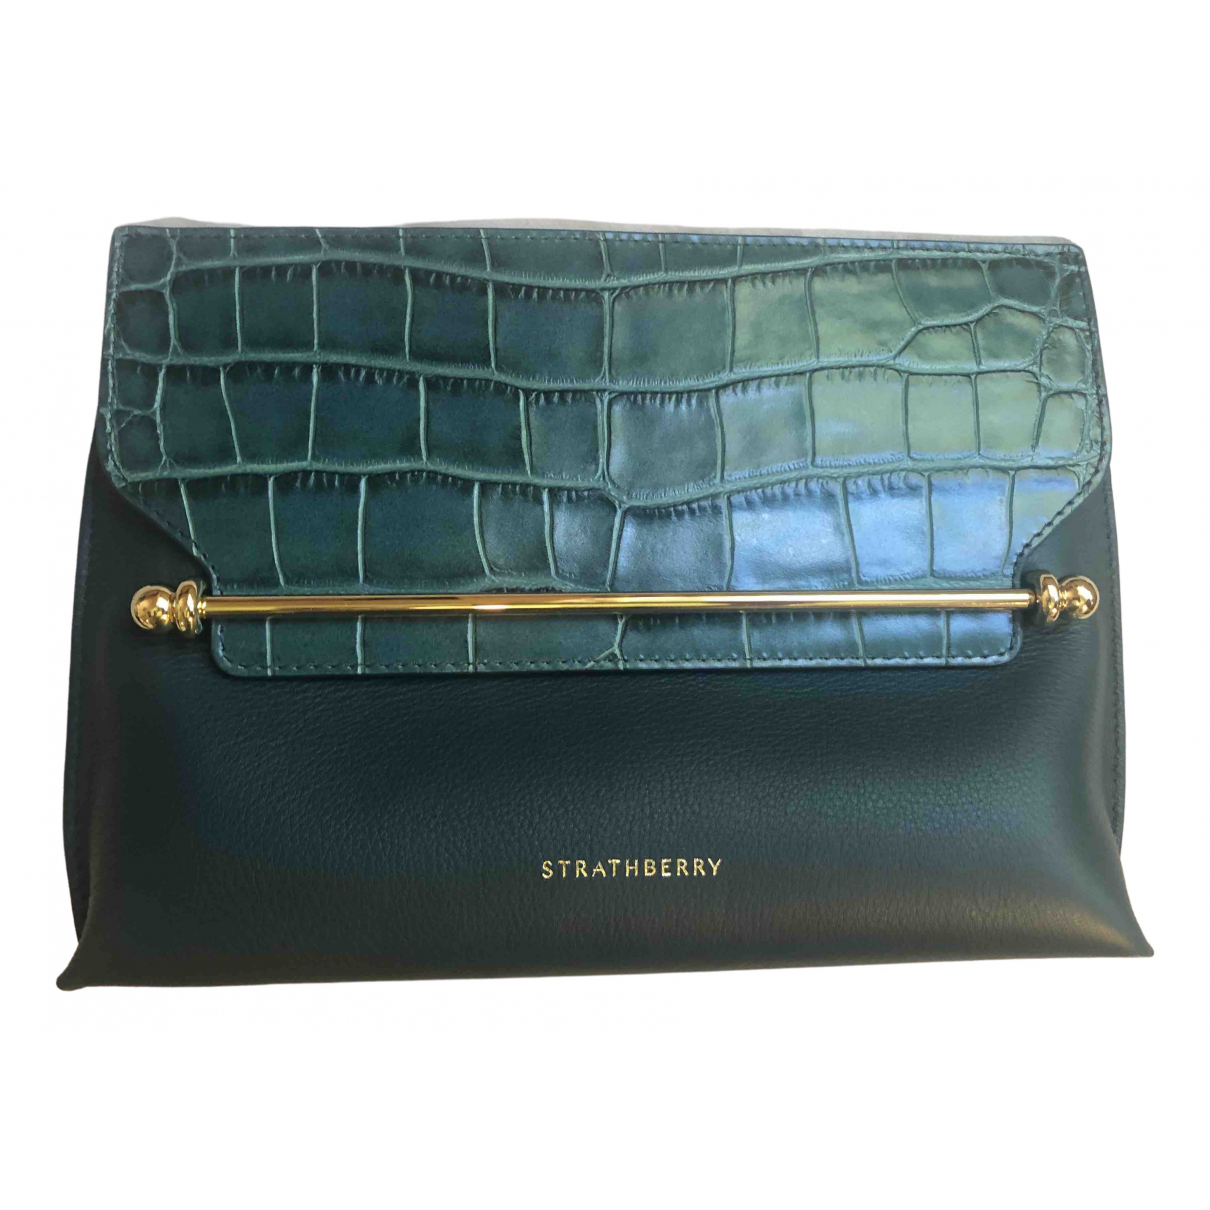 Strathberry \N Turquoise Leather handbag for Women \N